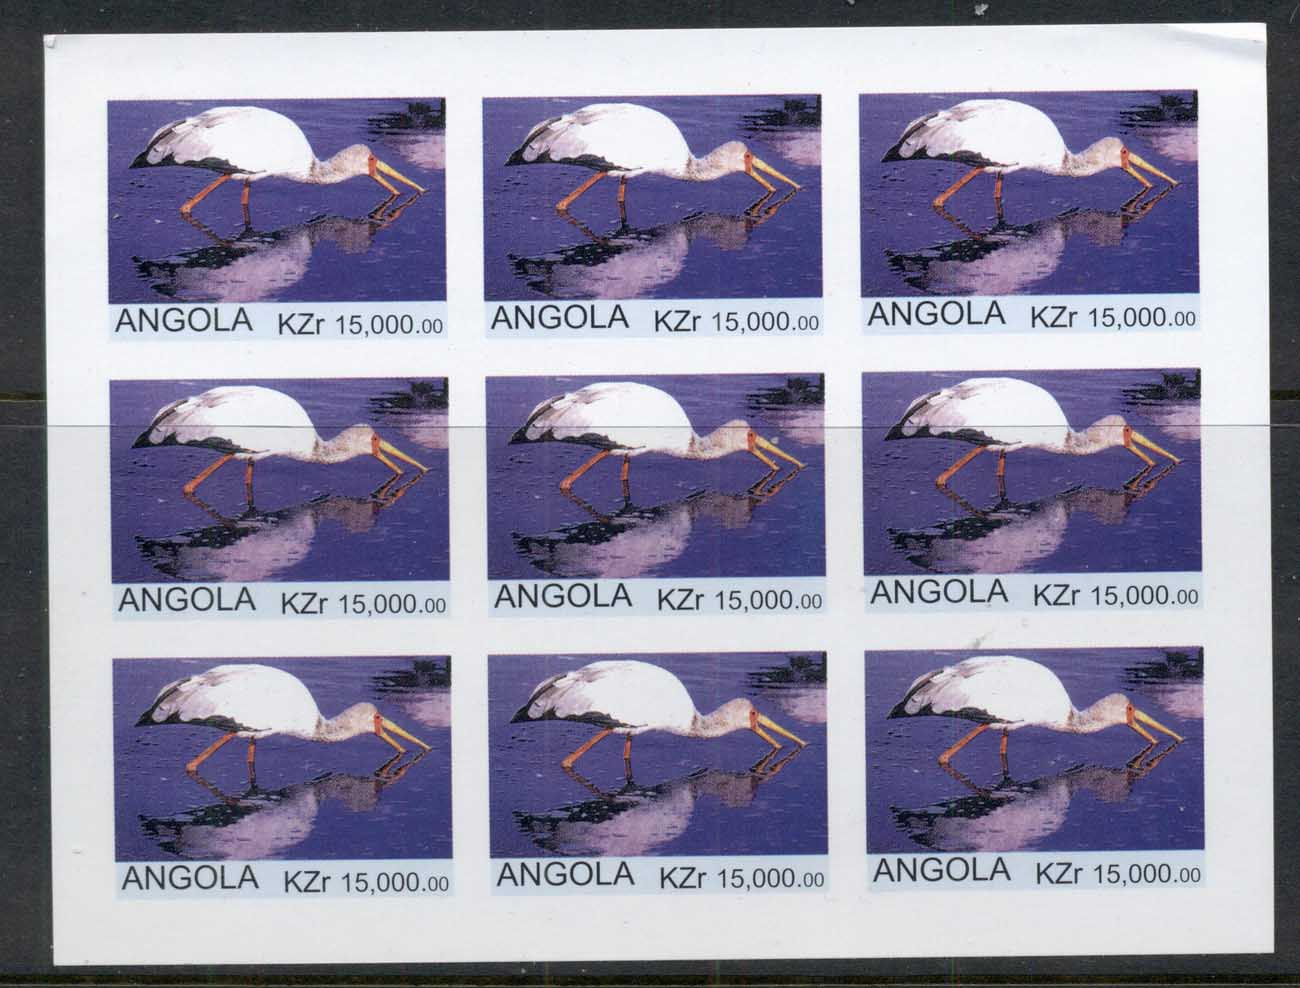 Angola 2000 Birds (Rebel issue) IMPERF MS MUH